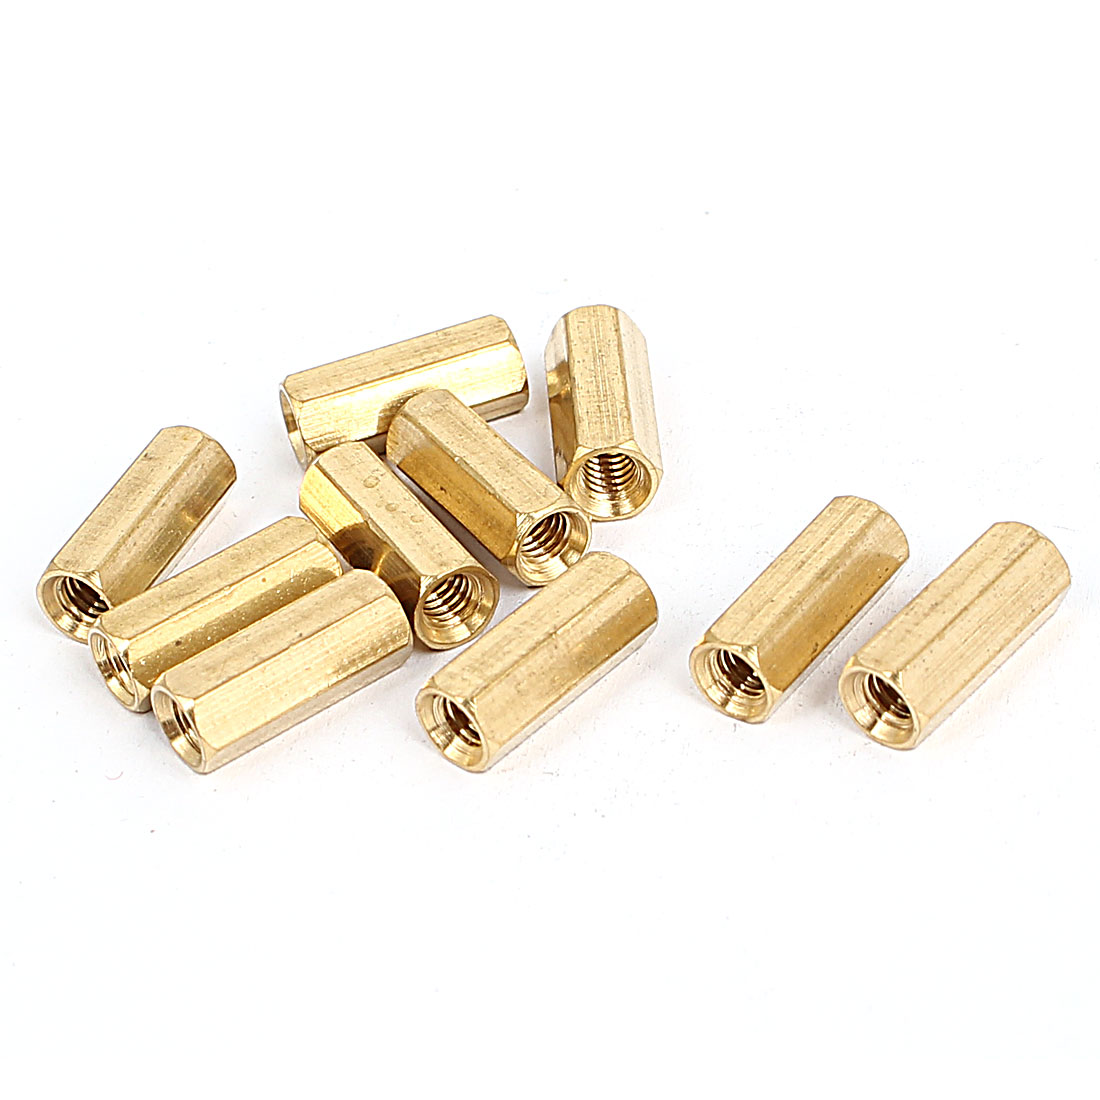 M4x15mm Brass Hex Hexagonal Female Thread PCB Standoff Spacer 10pcs